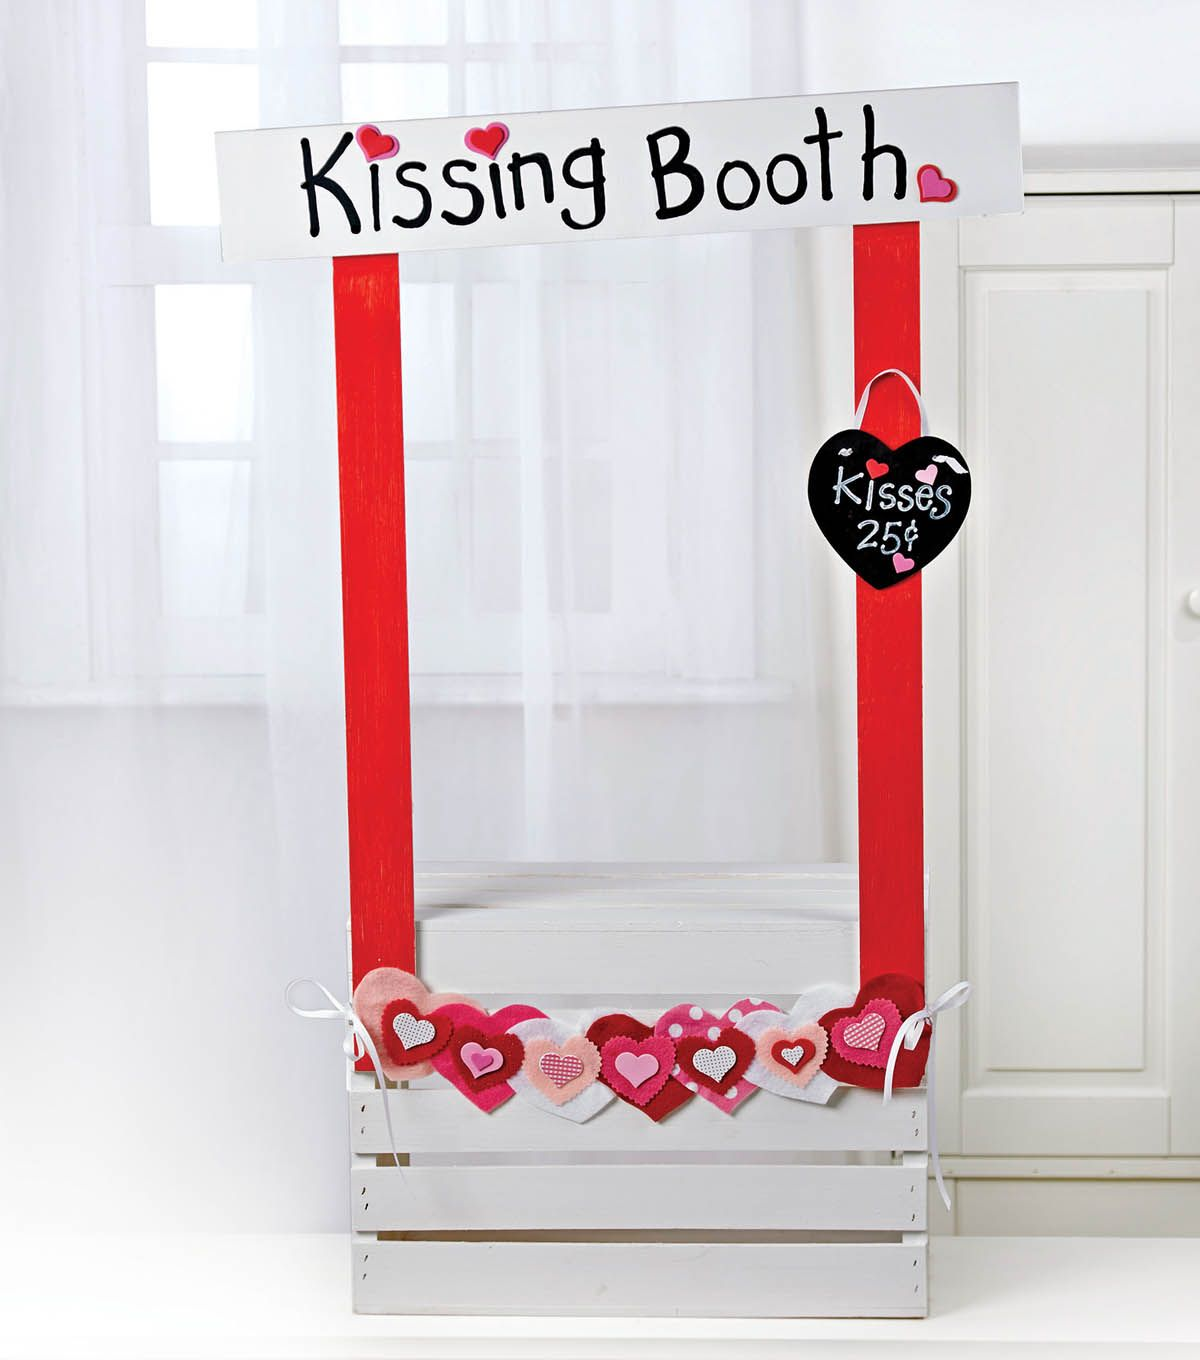 Valentine Gift Idea 2 Home Decor Frame Layout: Create A DIY Kissing Booth, Great For Photo Props And